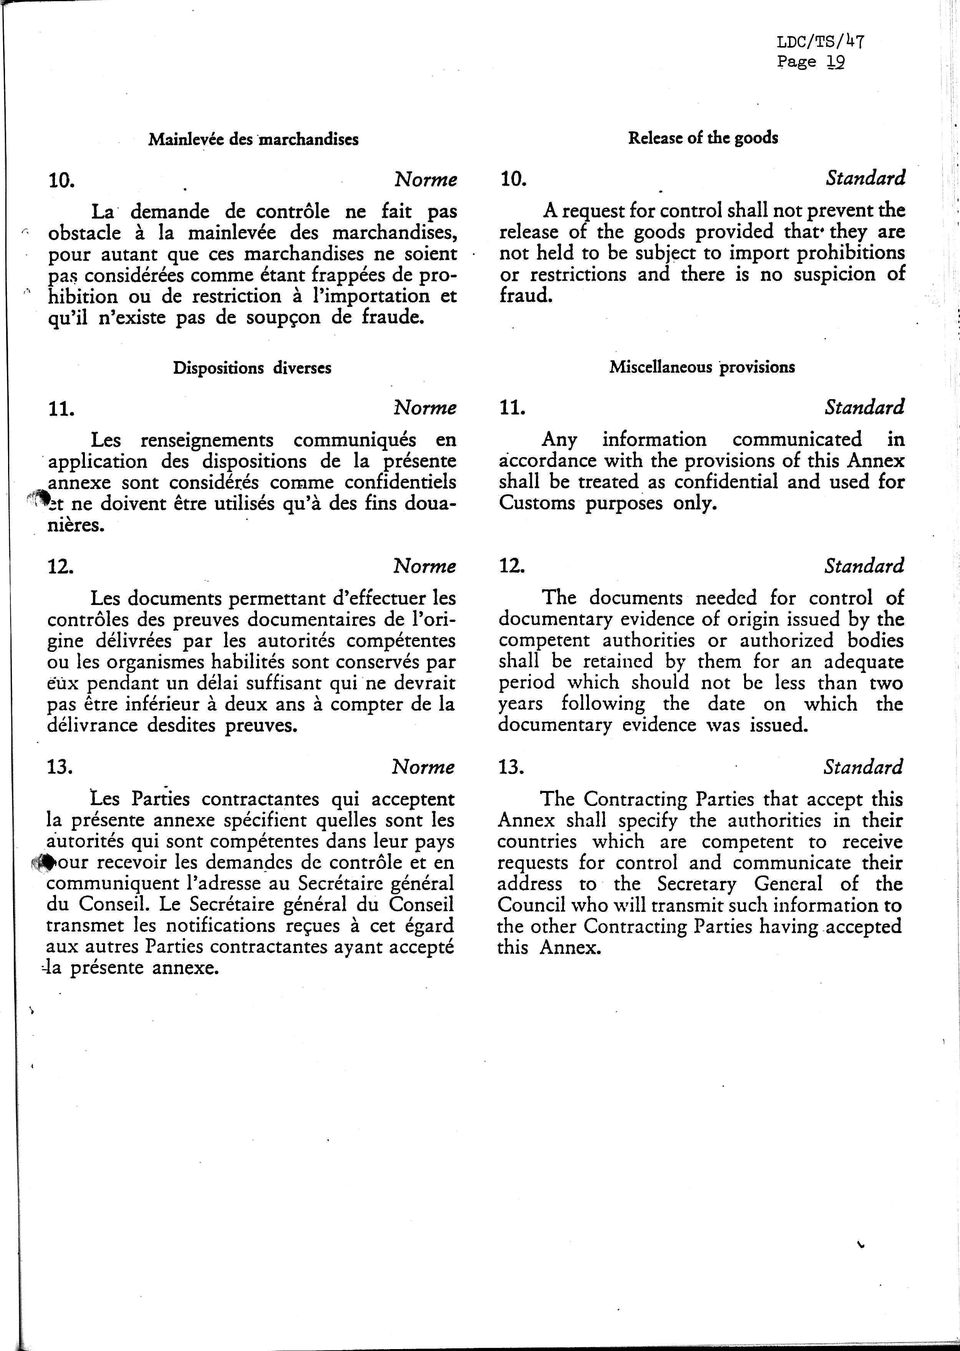 restriction à l'importation et qu'il n'existe pas de soupçon de fraude. Dispositions diverses 11.